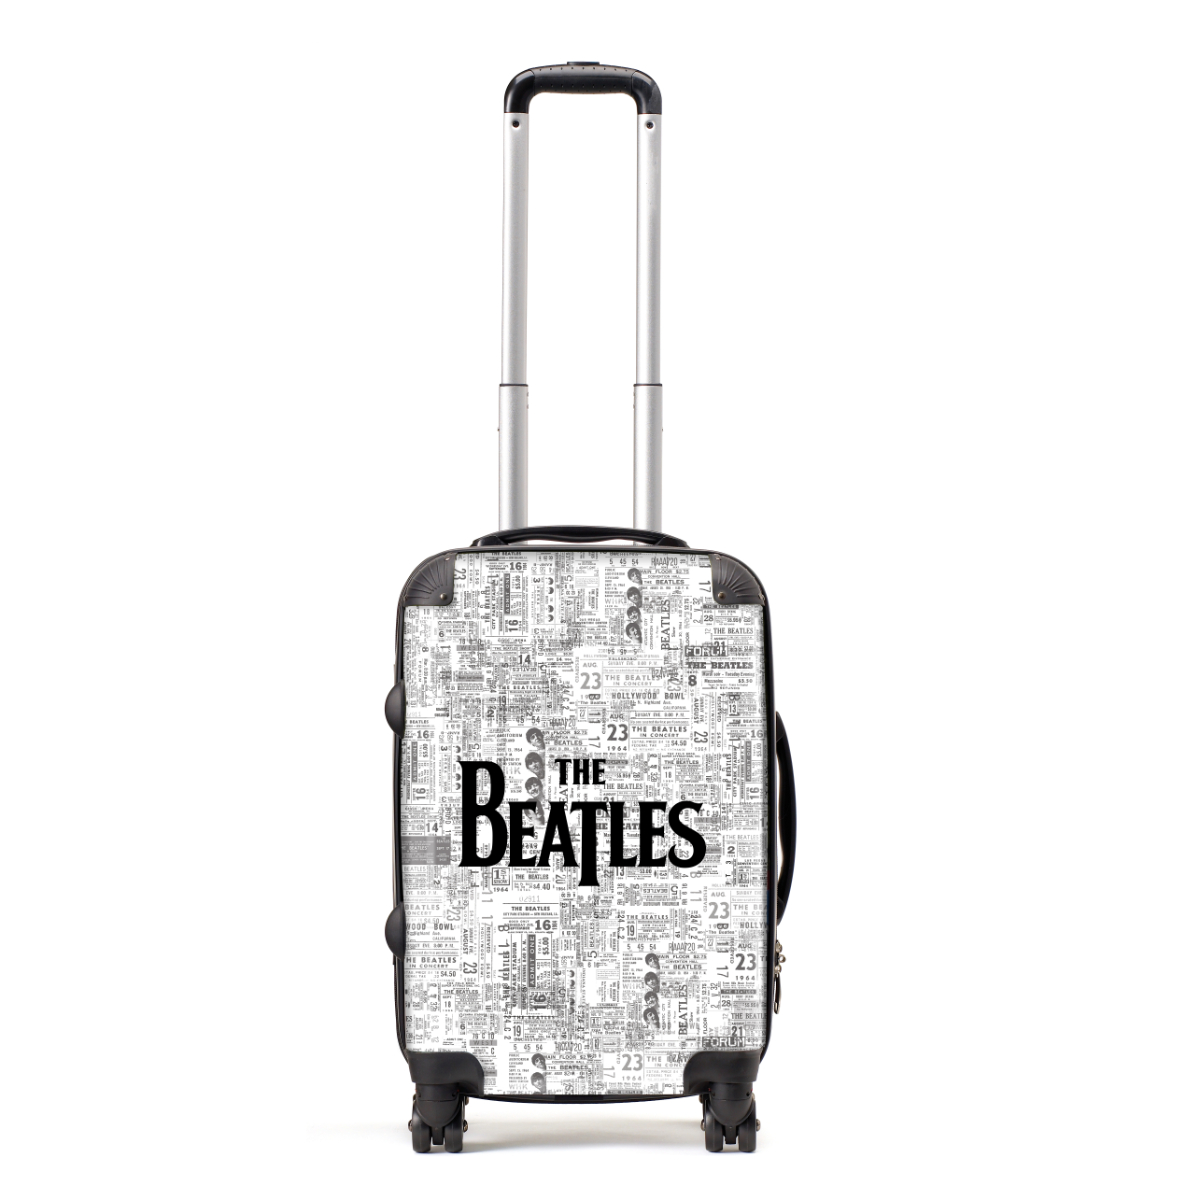 The Beatles Tickets Classic Carry-on Luggage